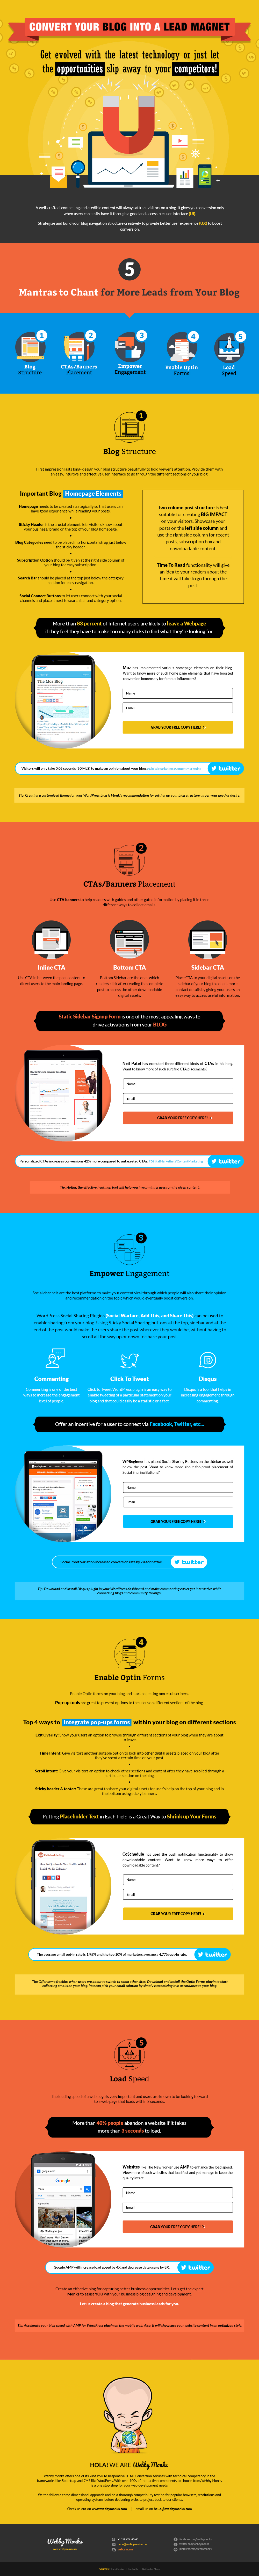 Infographic-How-To-Create-A-Perfect-Blog-That-Generates-Leads-V4-1000